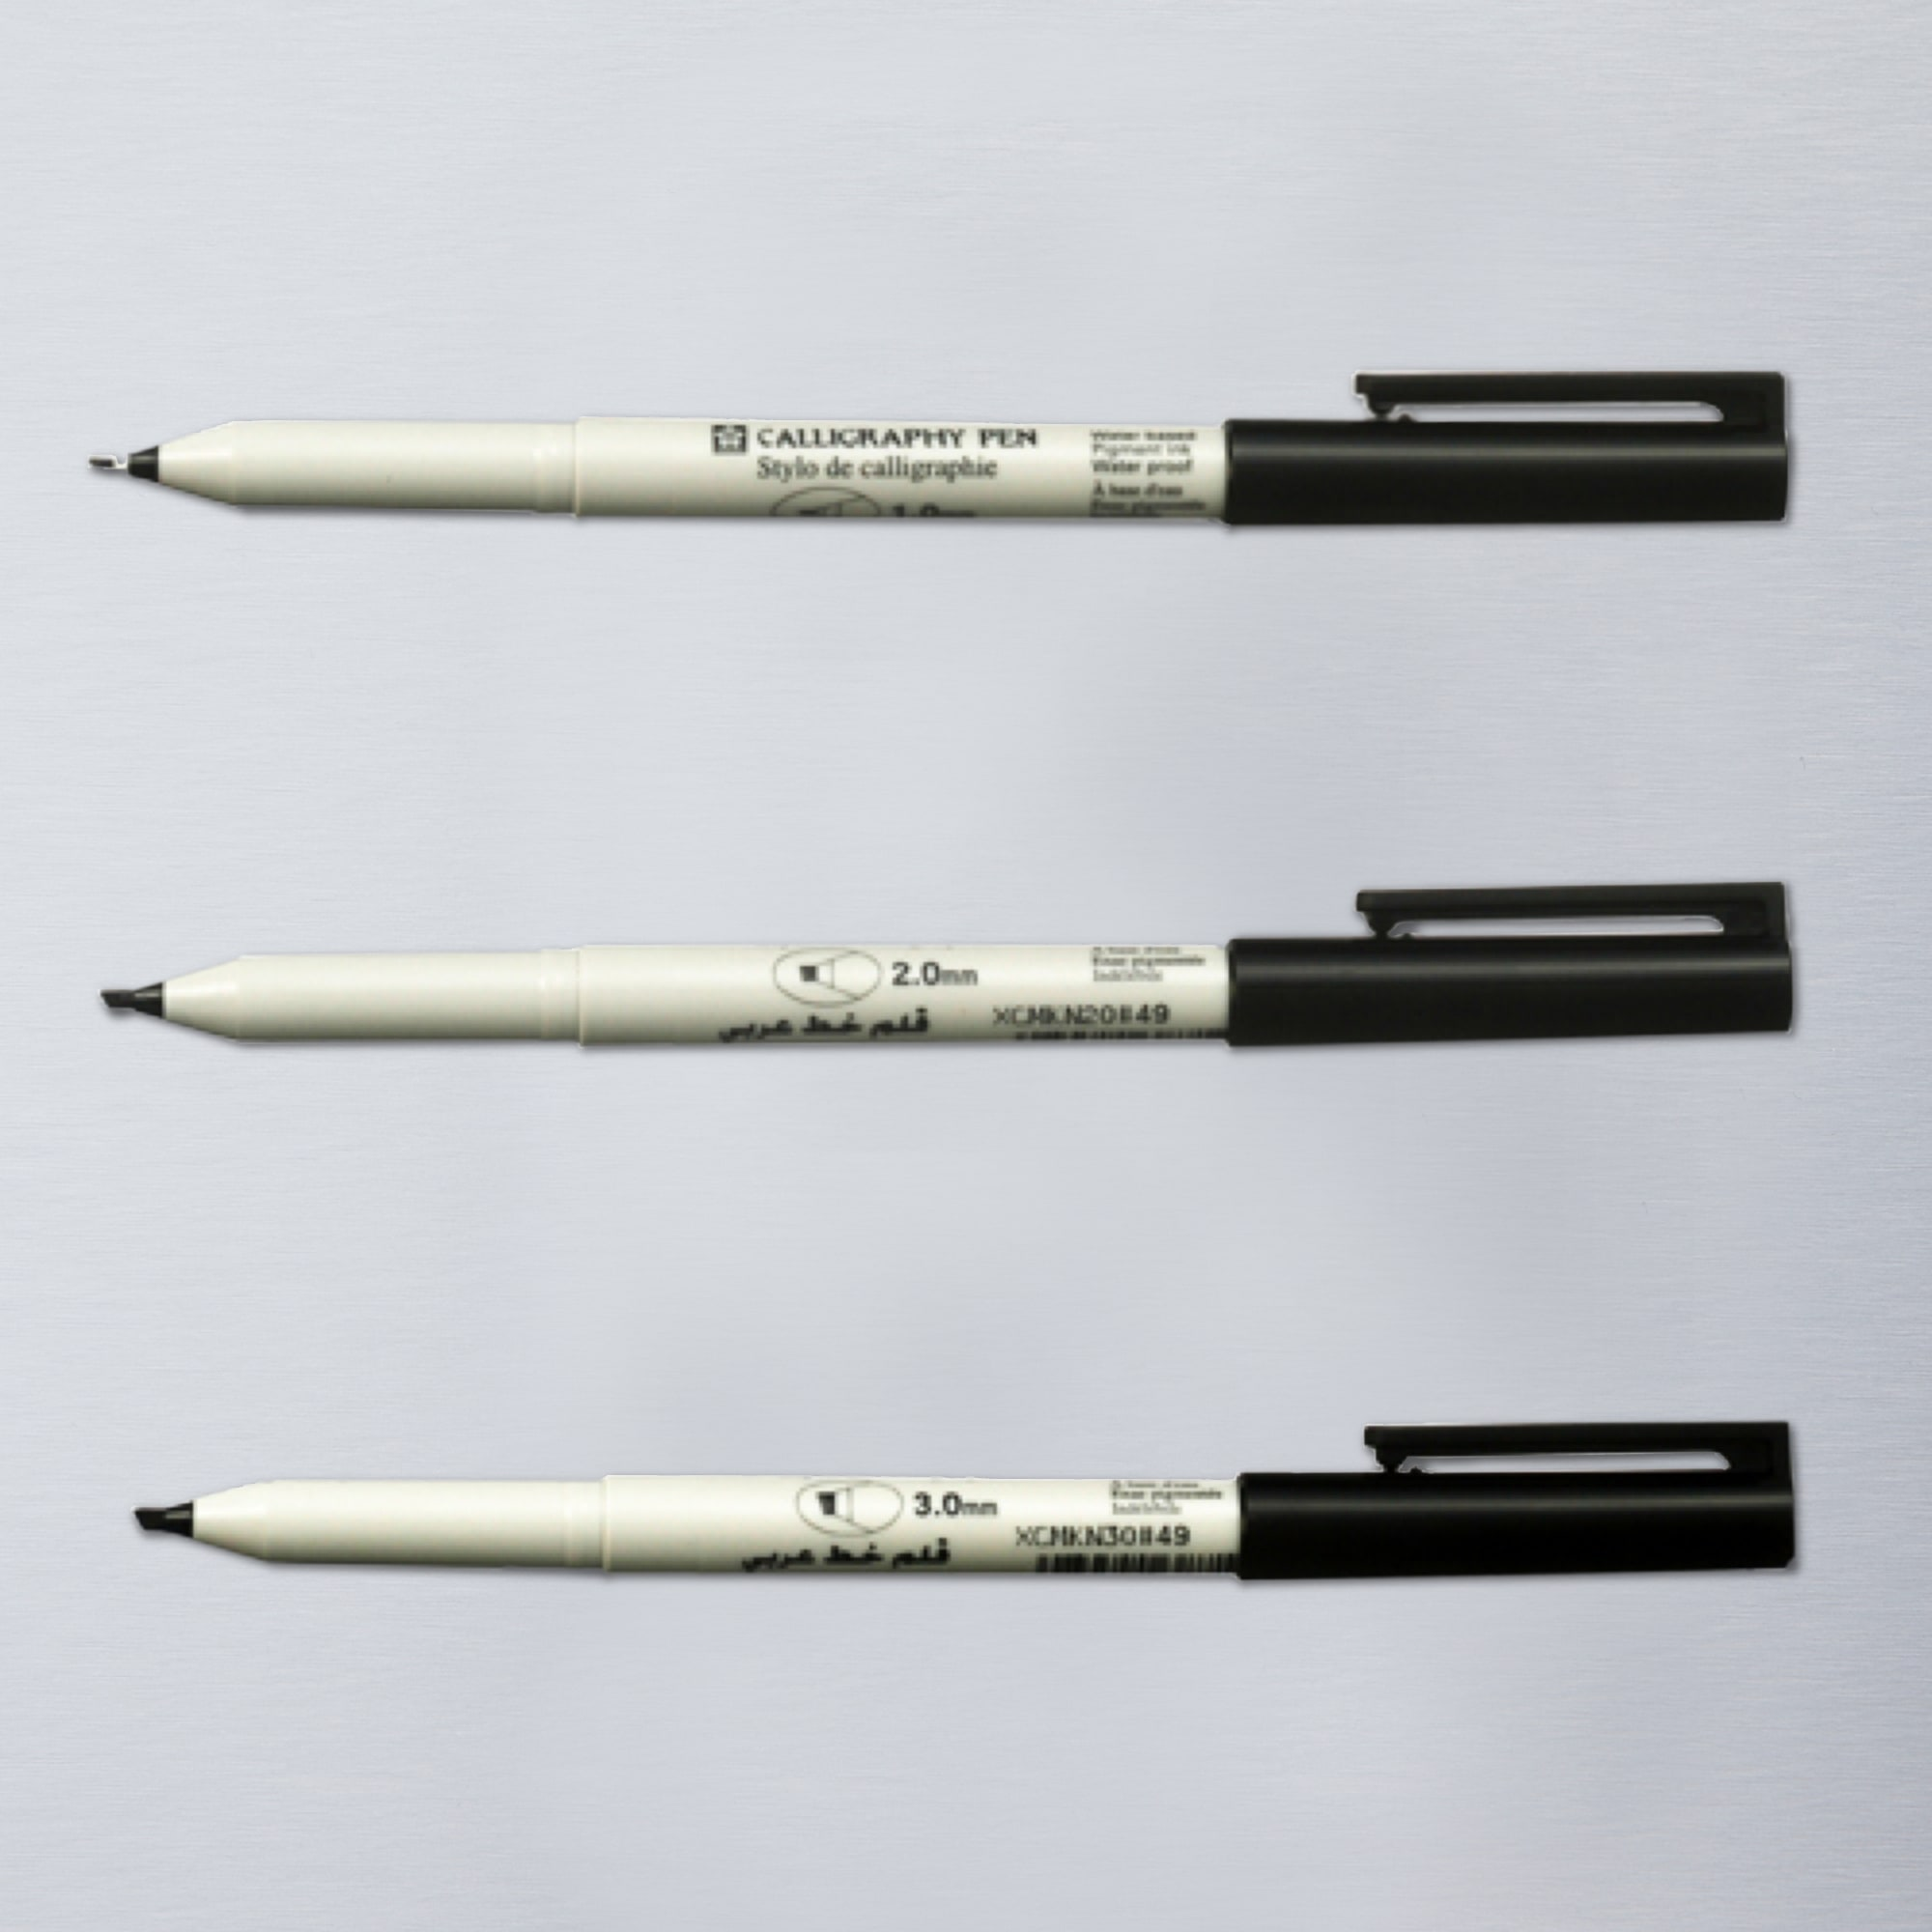 Sakura calligraphy pen black calligraphy pens Drawing with calligraphy pens